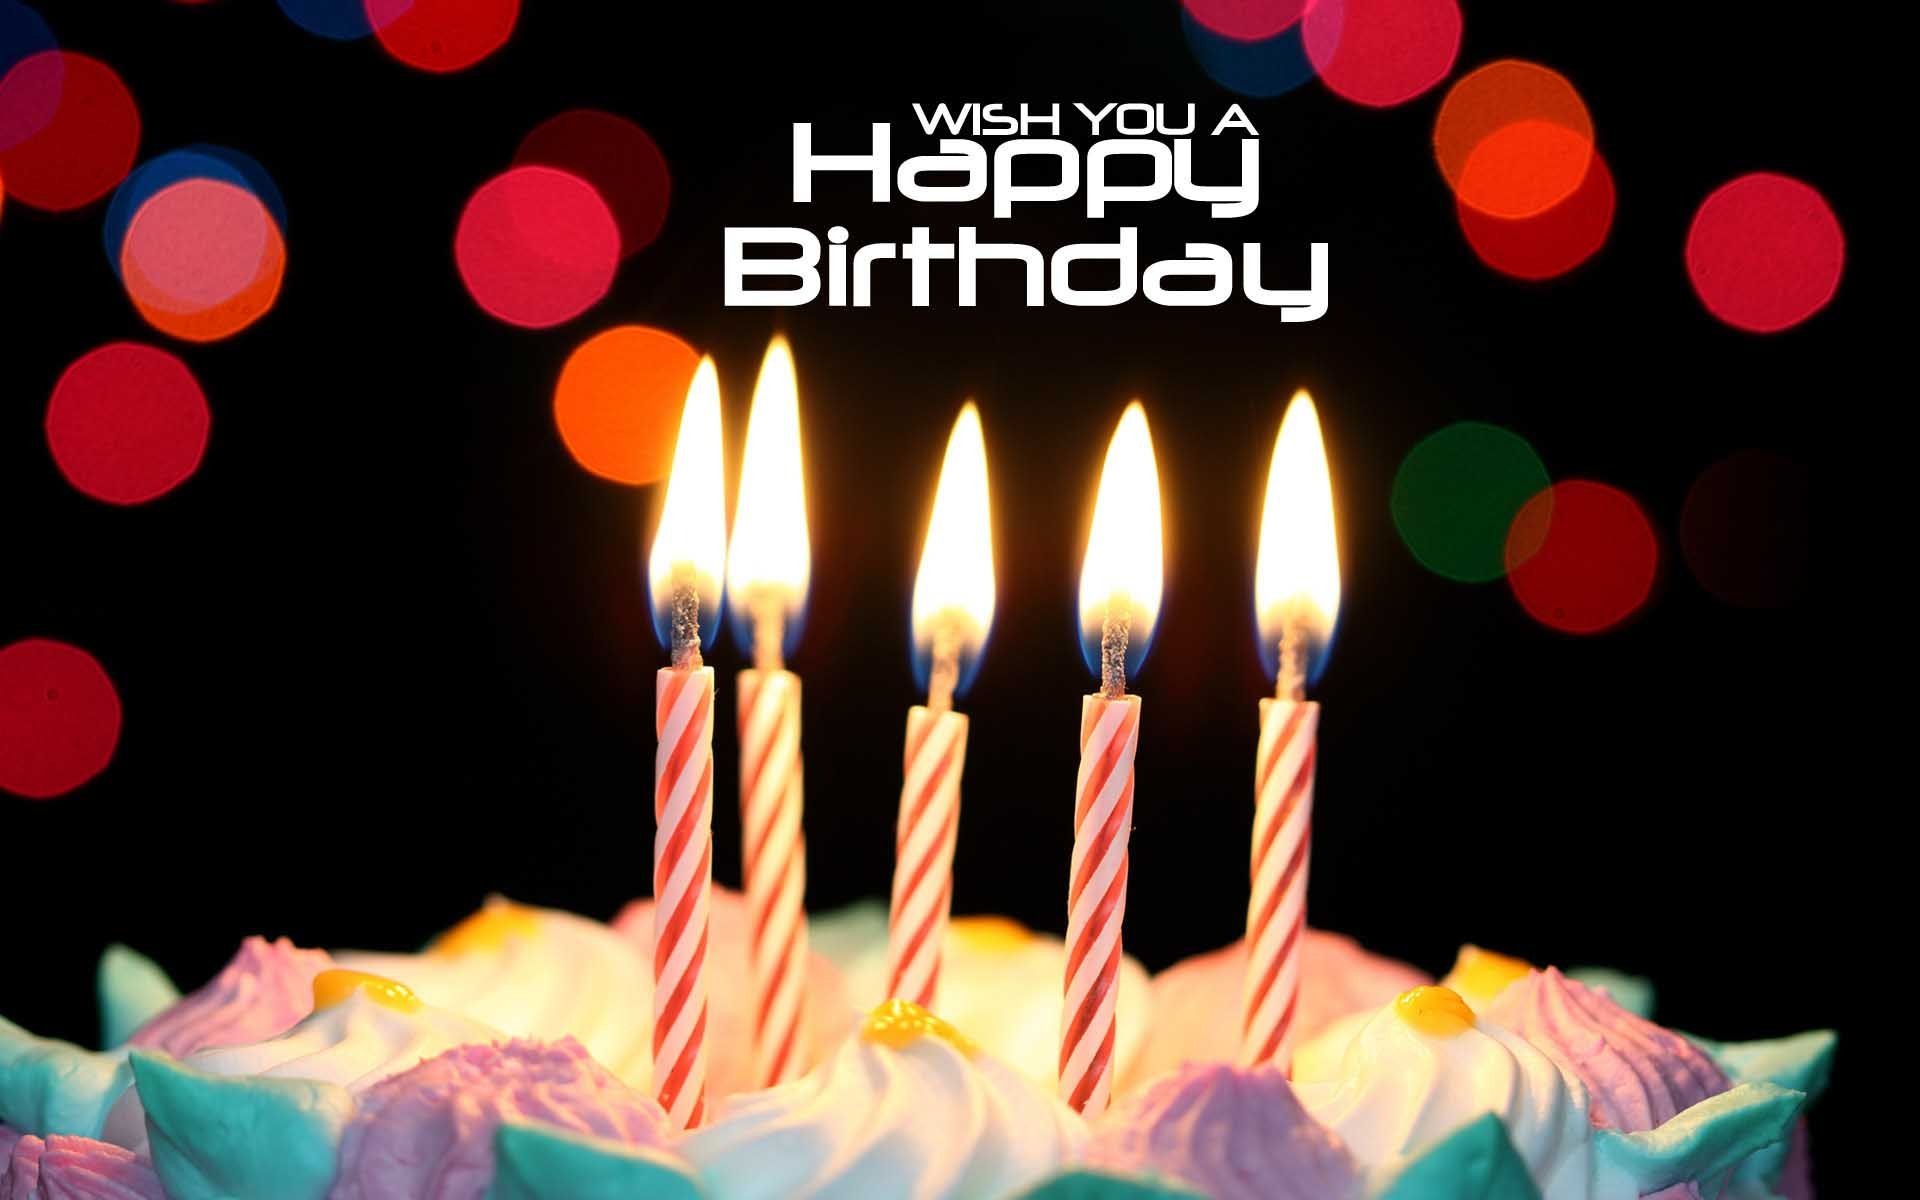 happy birthday hd images download ; wish_you_a_happy_birthday